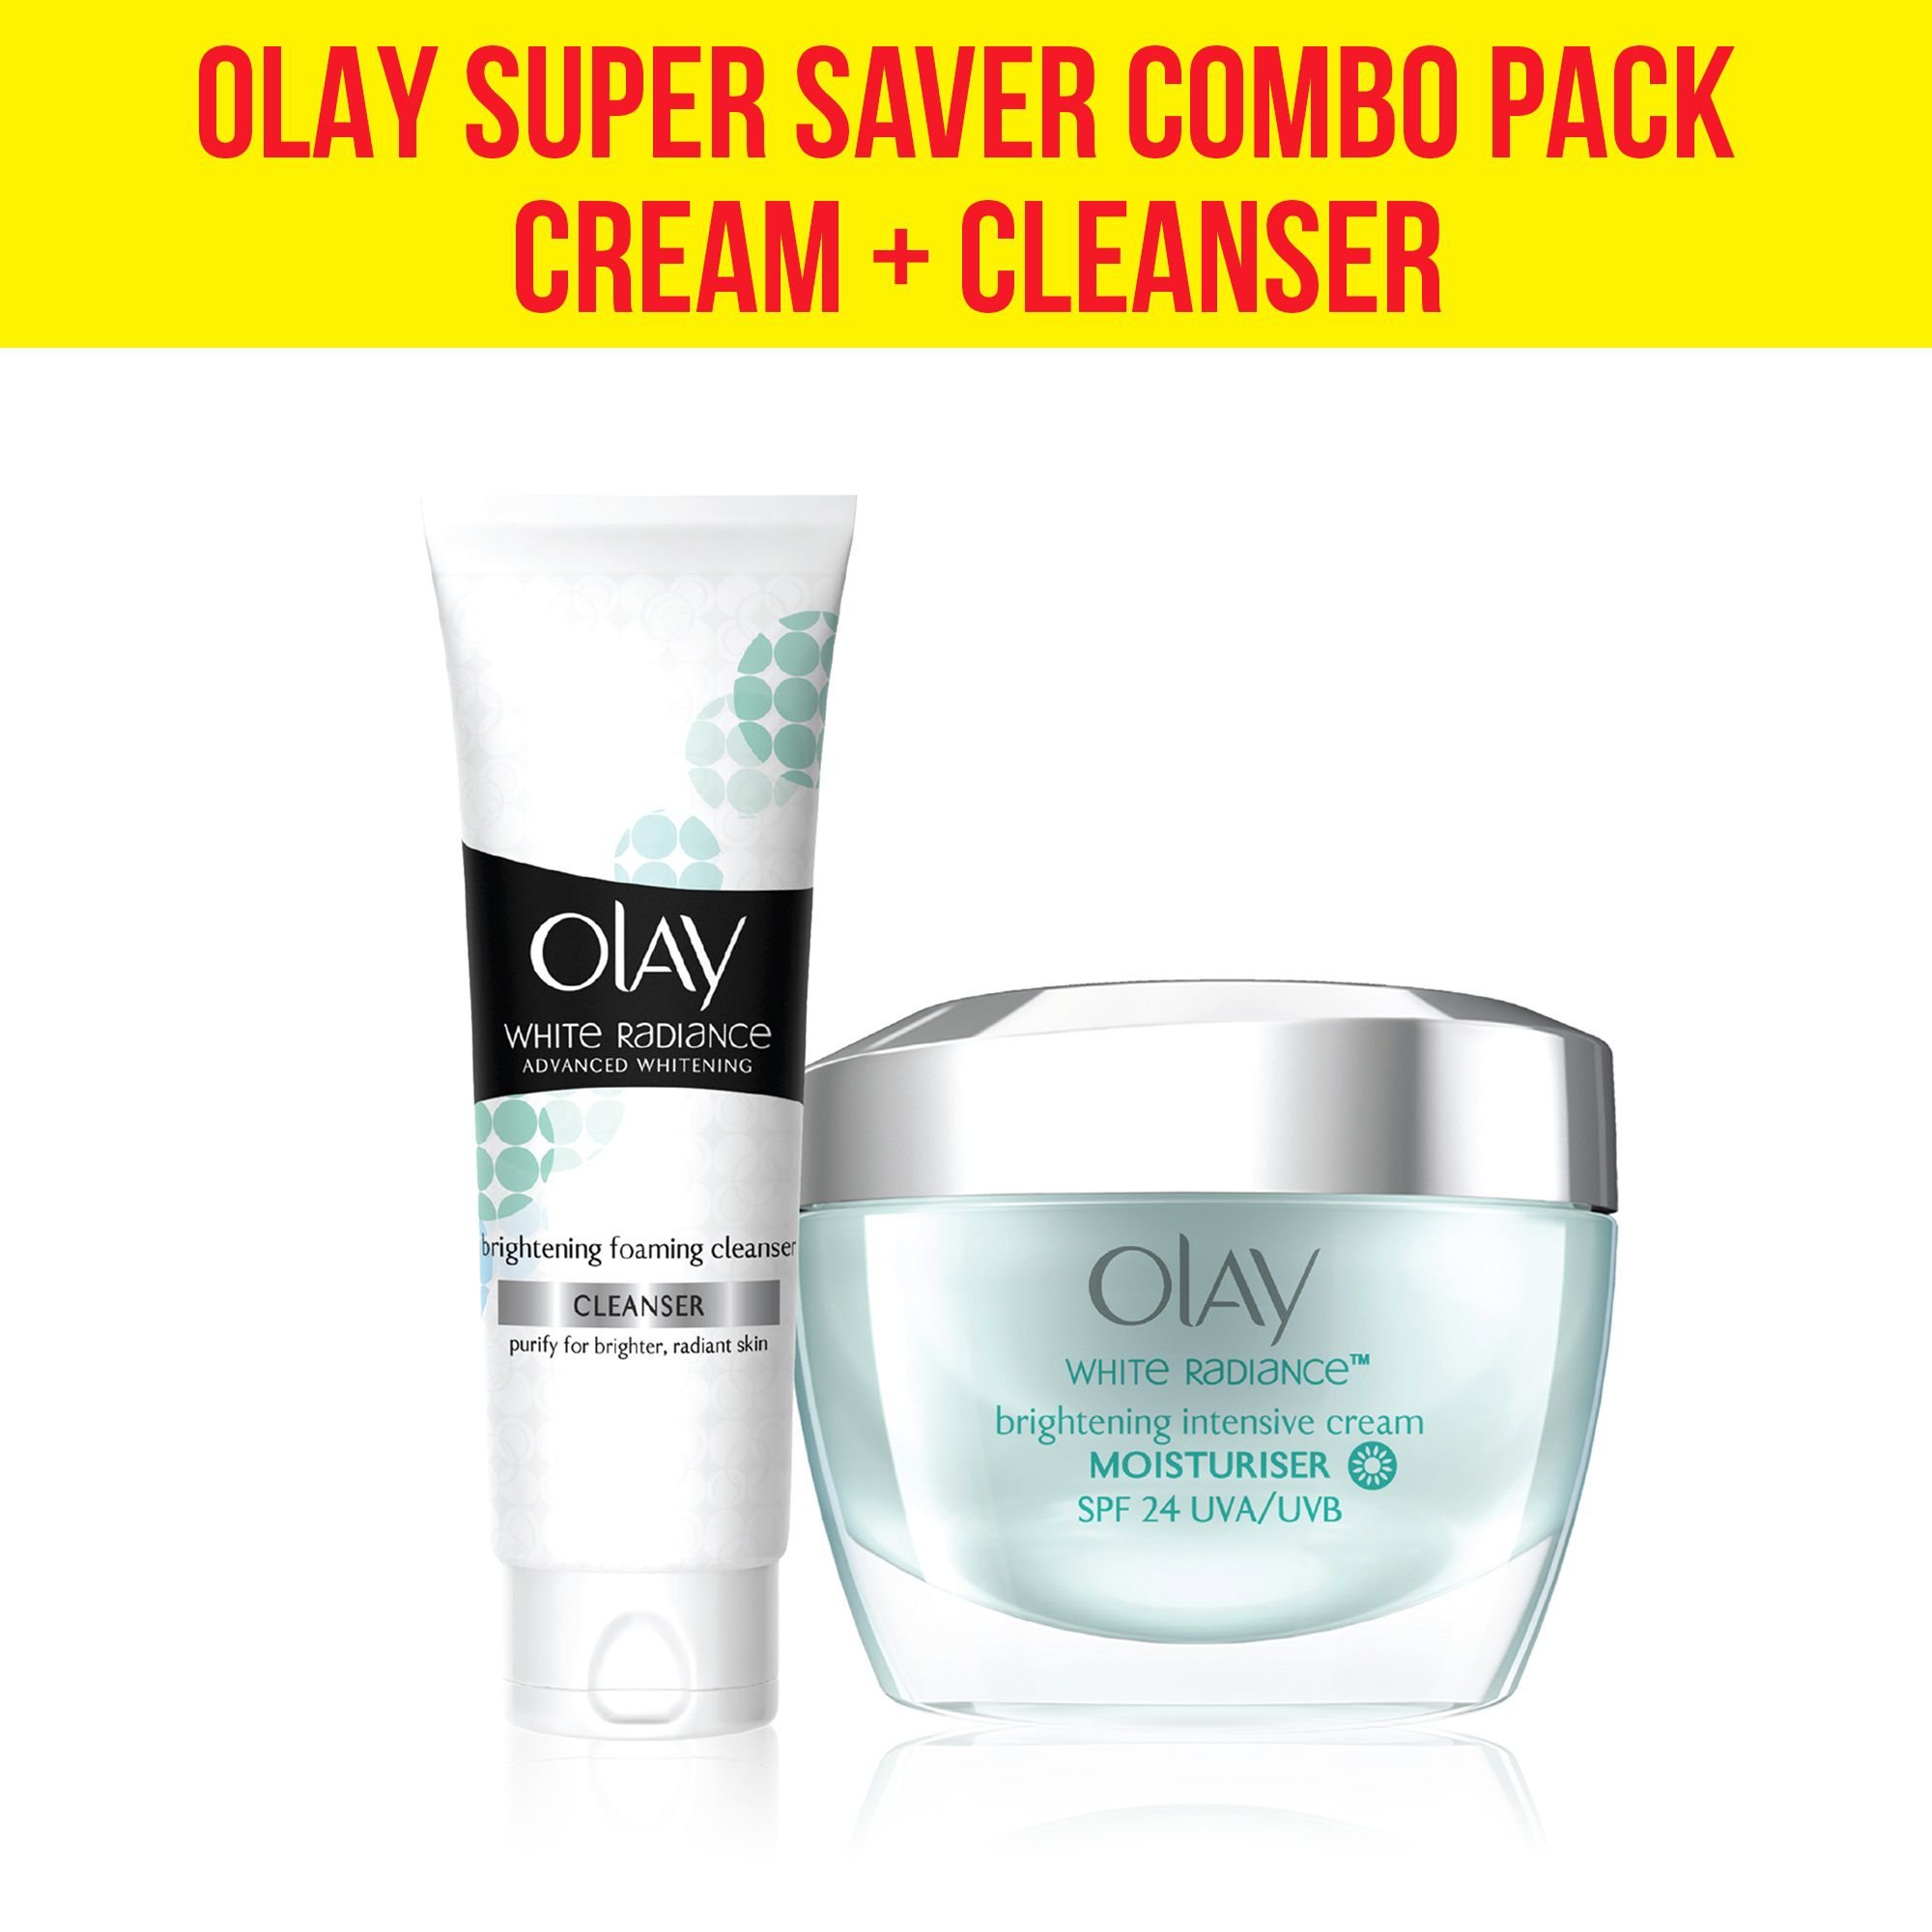 Olay White Radiance Advanced Whitening Fairness Protective Skin Cream 50g + Foaming Cleanser 100g Combo Pack: Buy Olay White Radiance Advanced Whitening ...